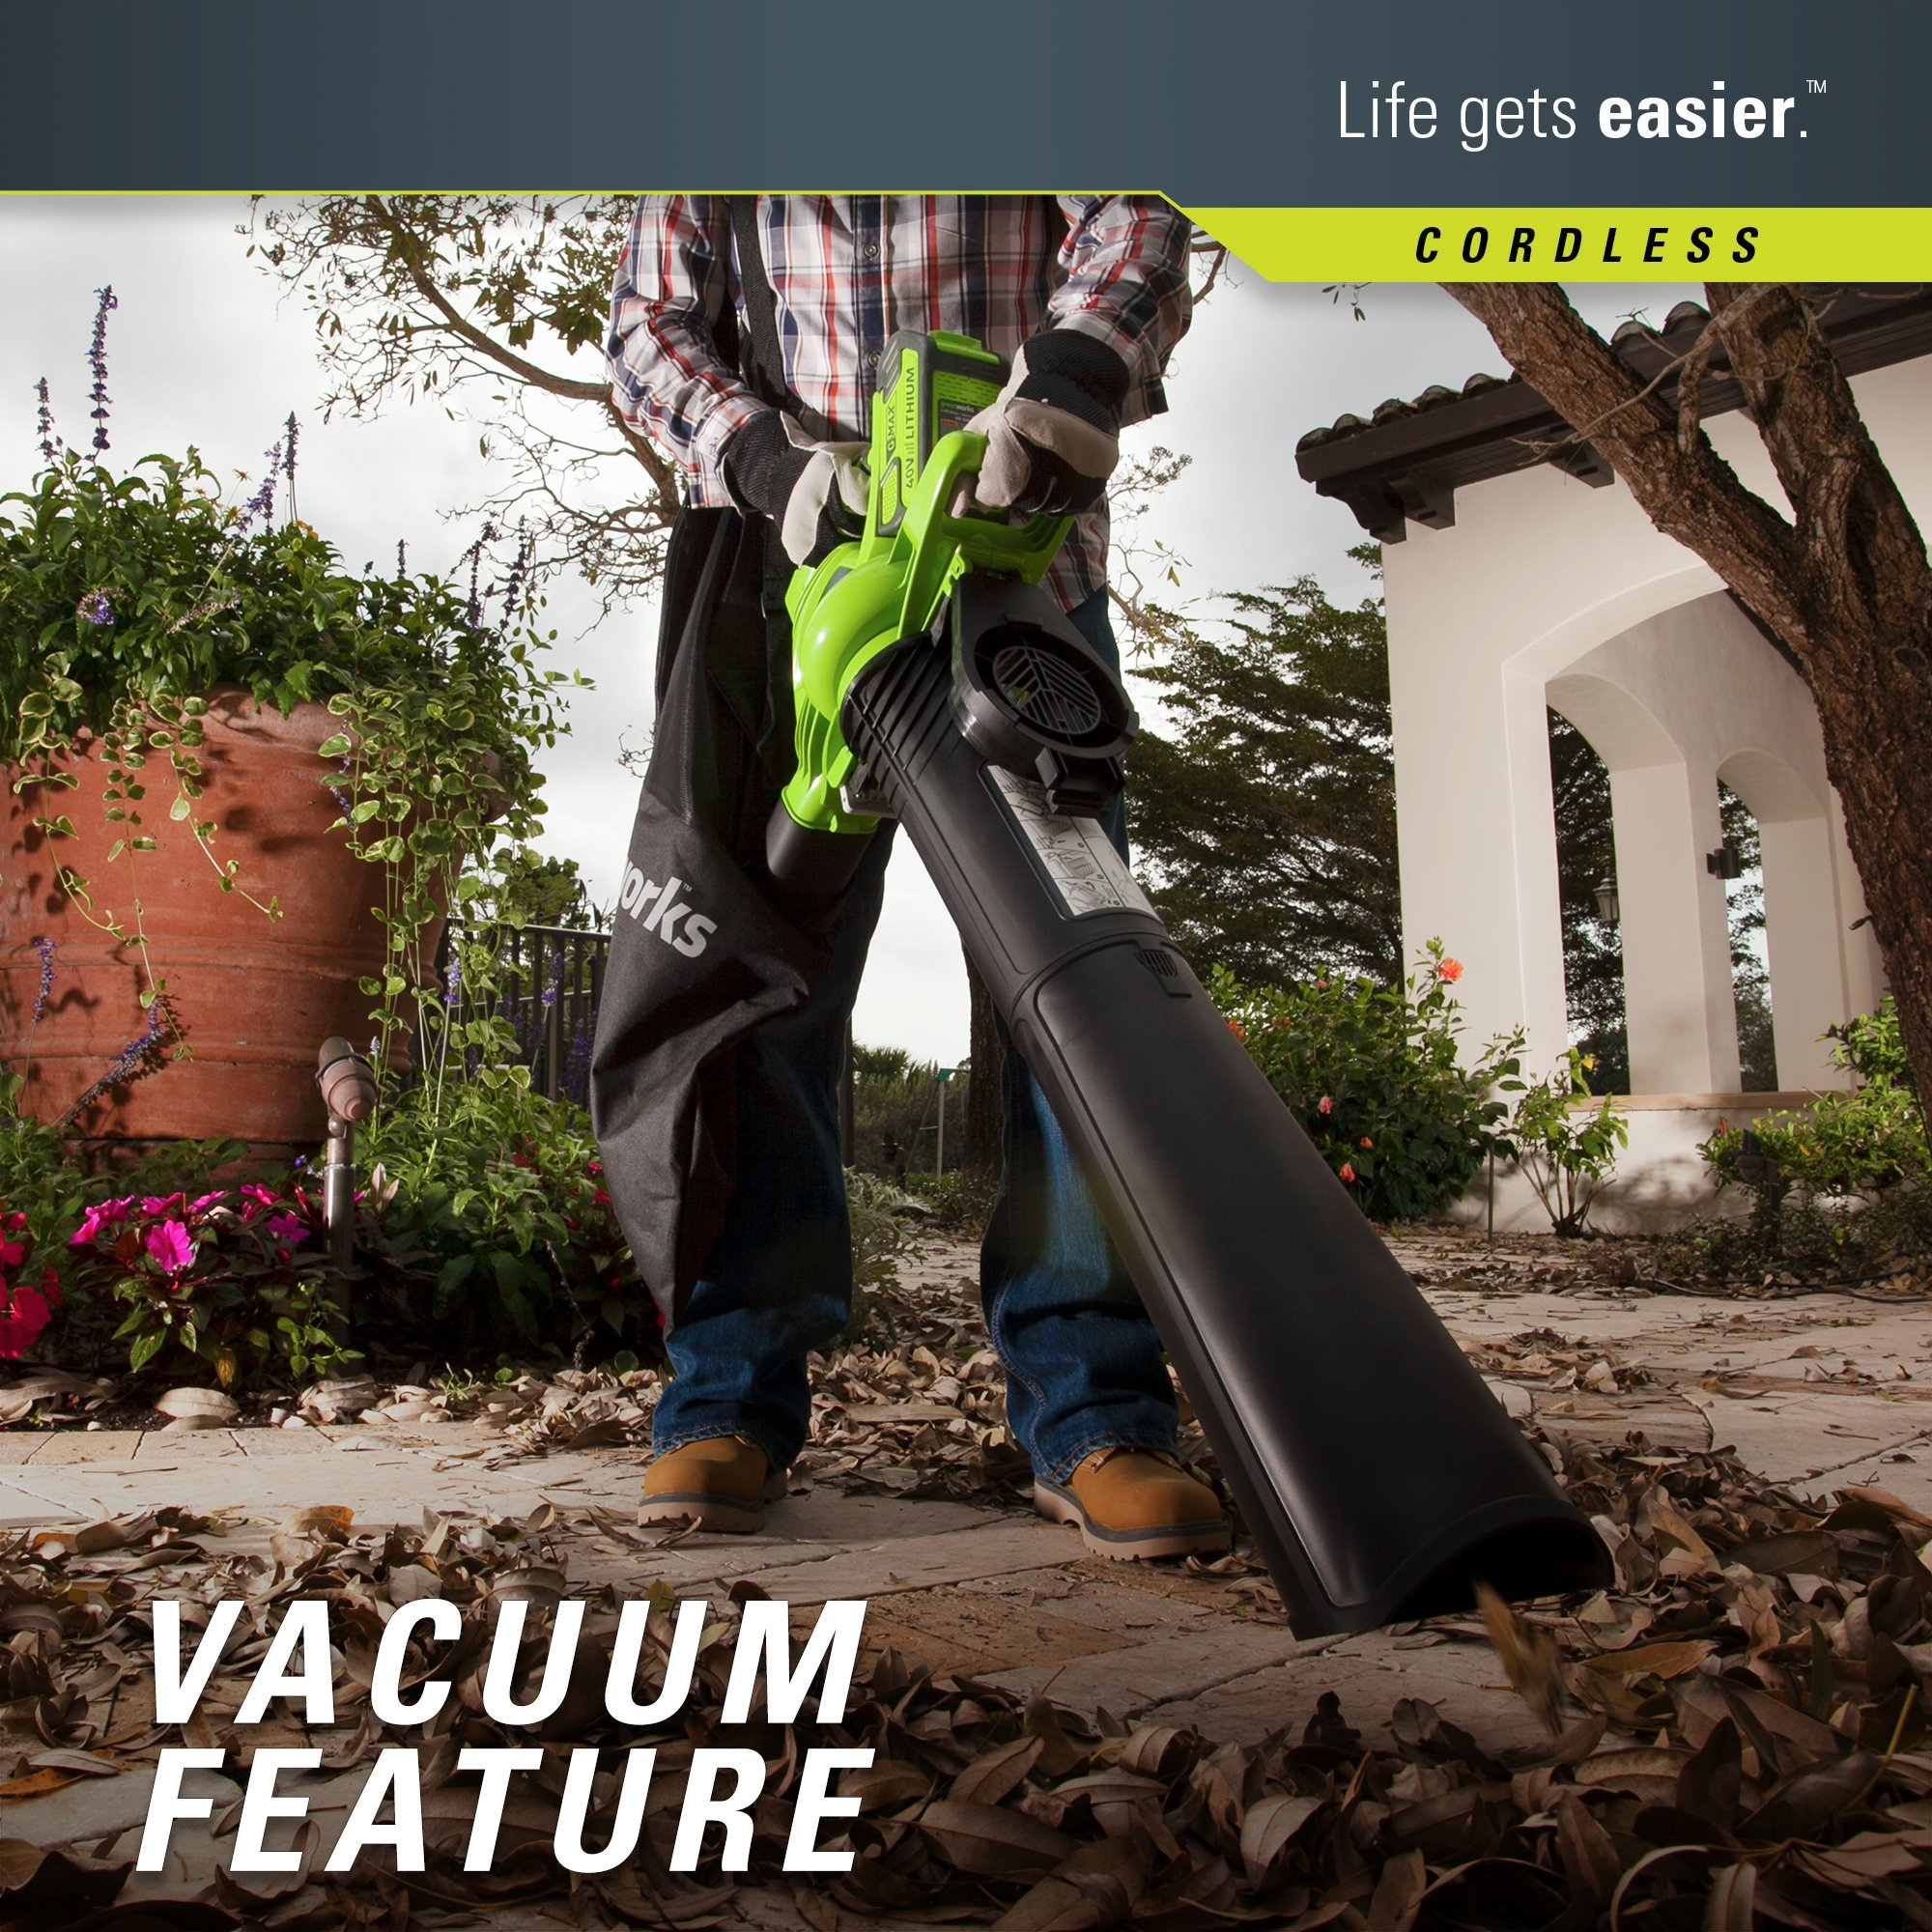 Greenworks 40V 185 MPH Variable Speed Cordless Blower Vacuum, 4.0 AH Battery Included 24322 by Greenworks (Image #3)